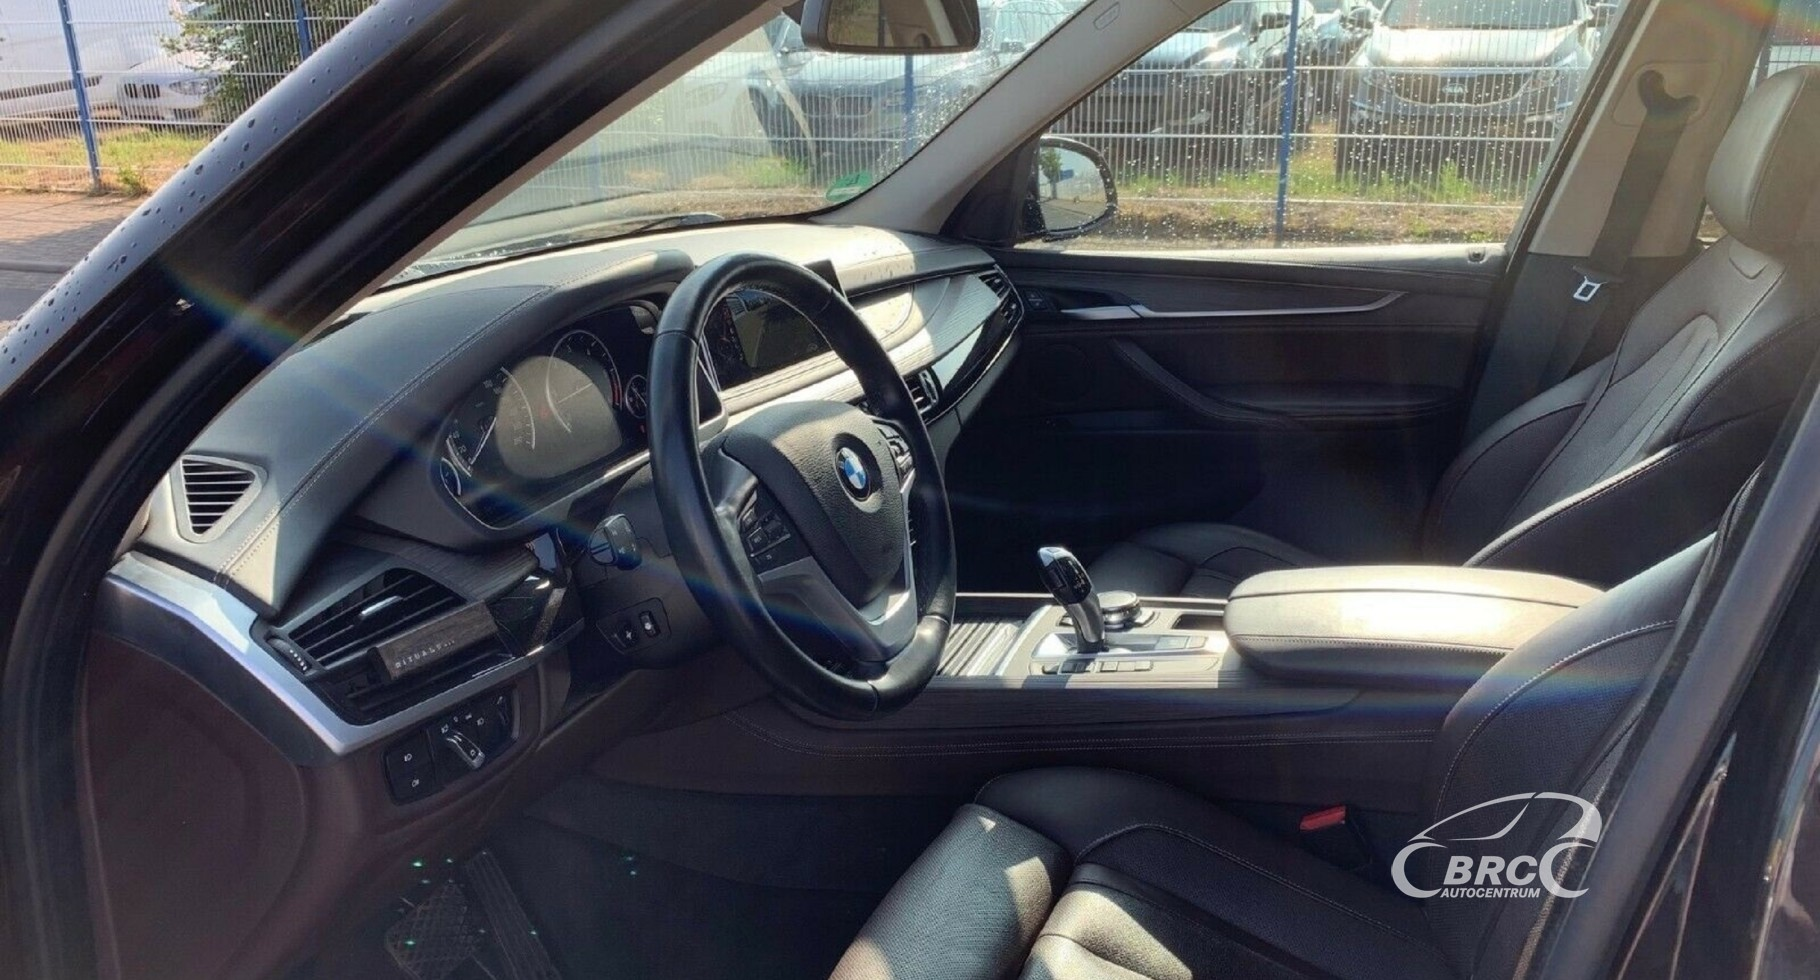 BMW X5 xDrive30d Experience Automatas